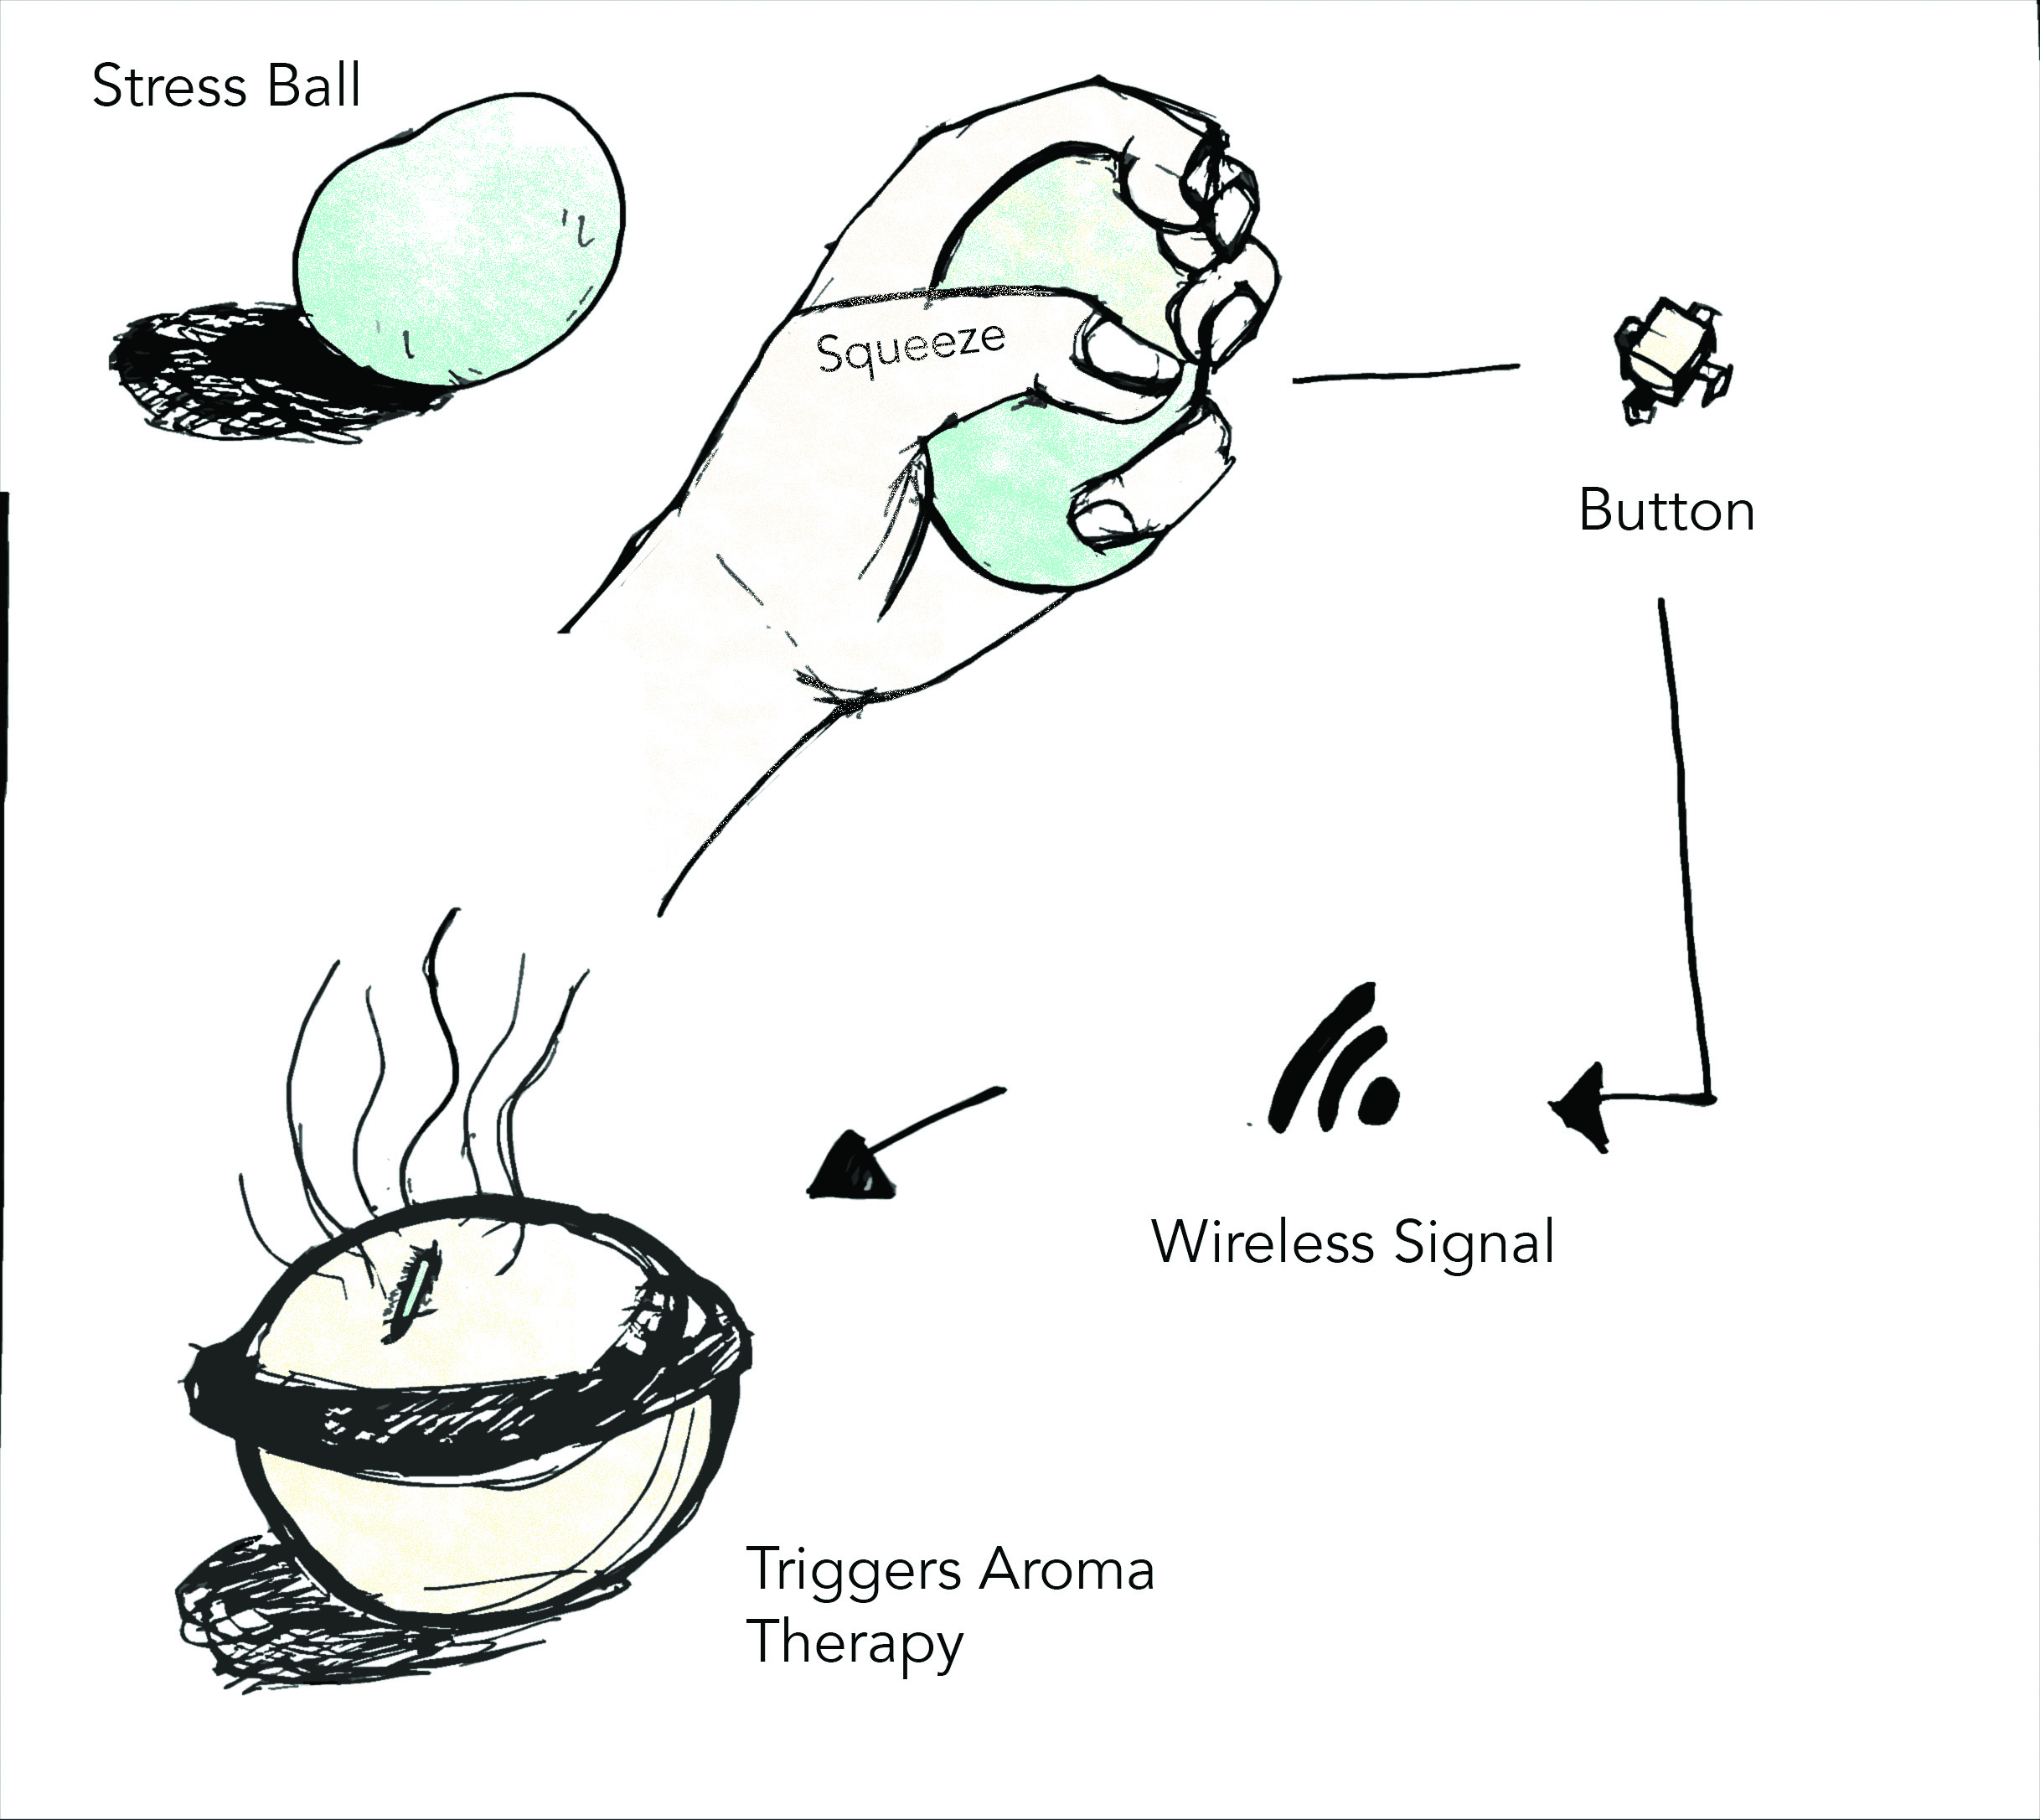 stressball_aroma therapy.jpg